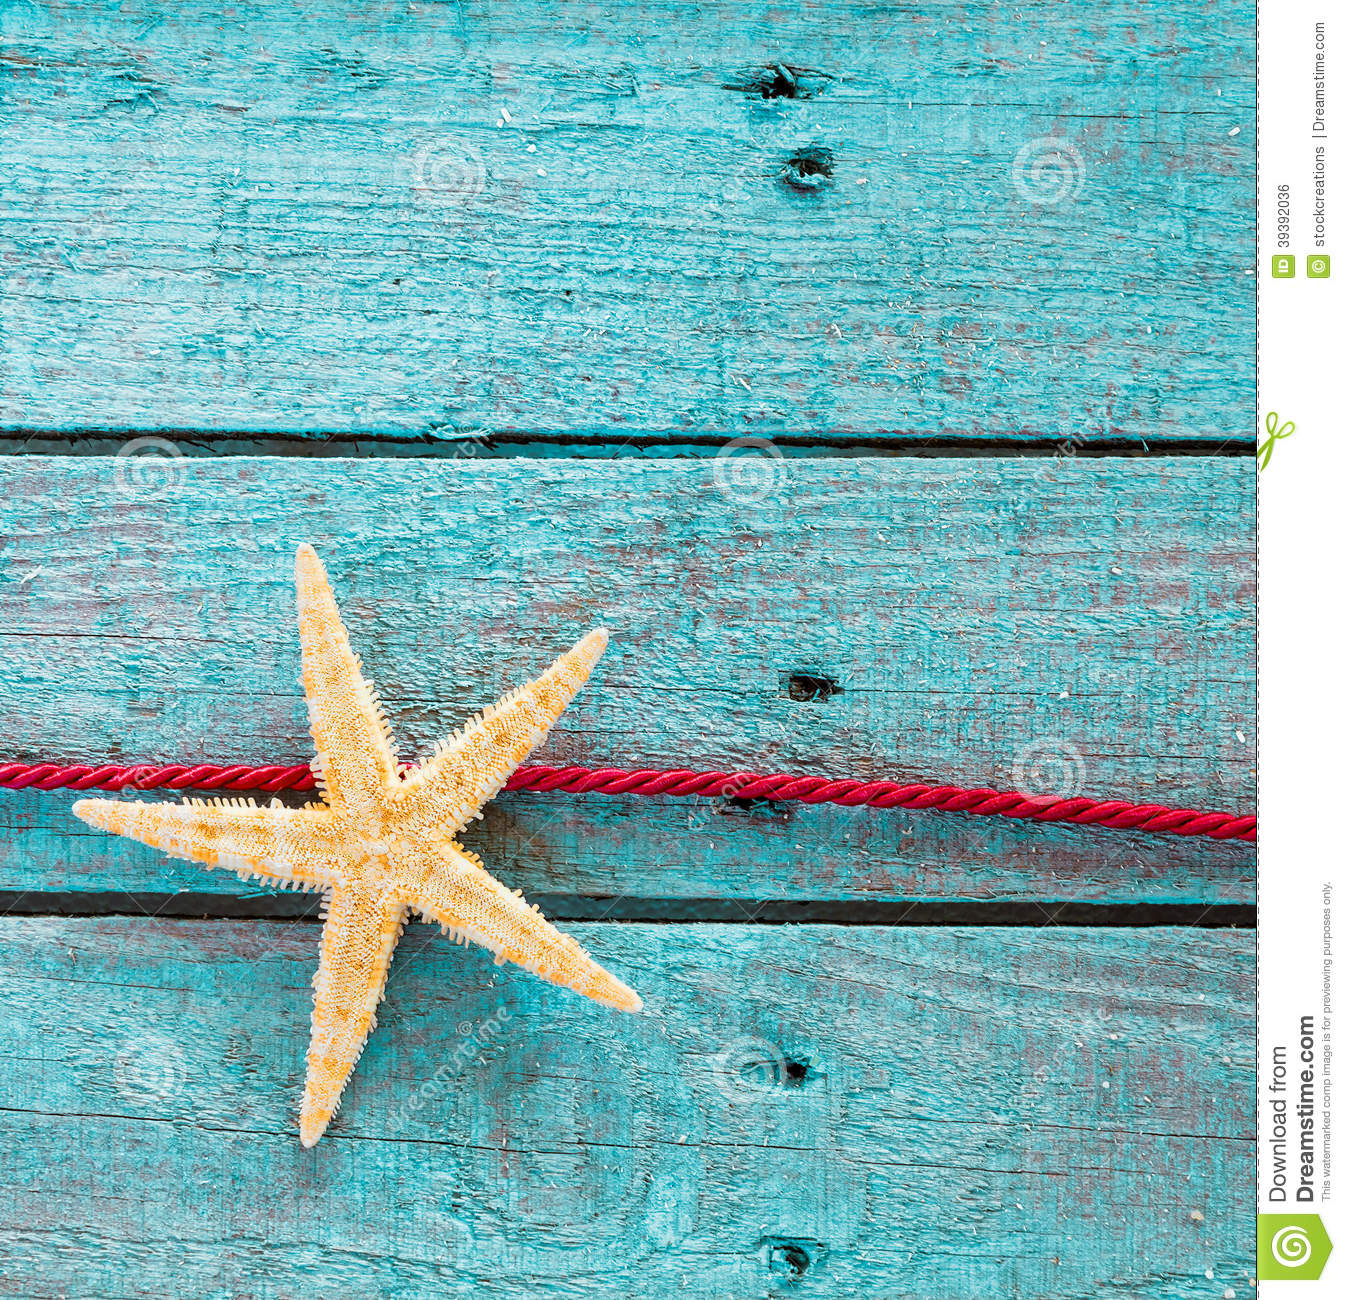 Sea Star Or Starfish With Decorative Red Rope Stock Photo